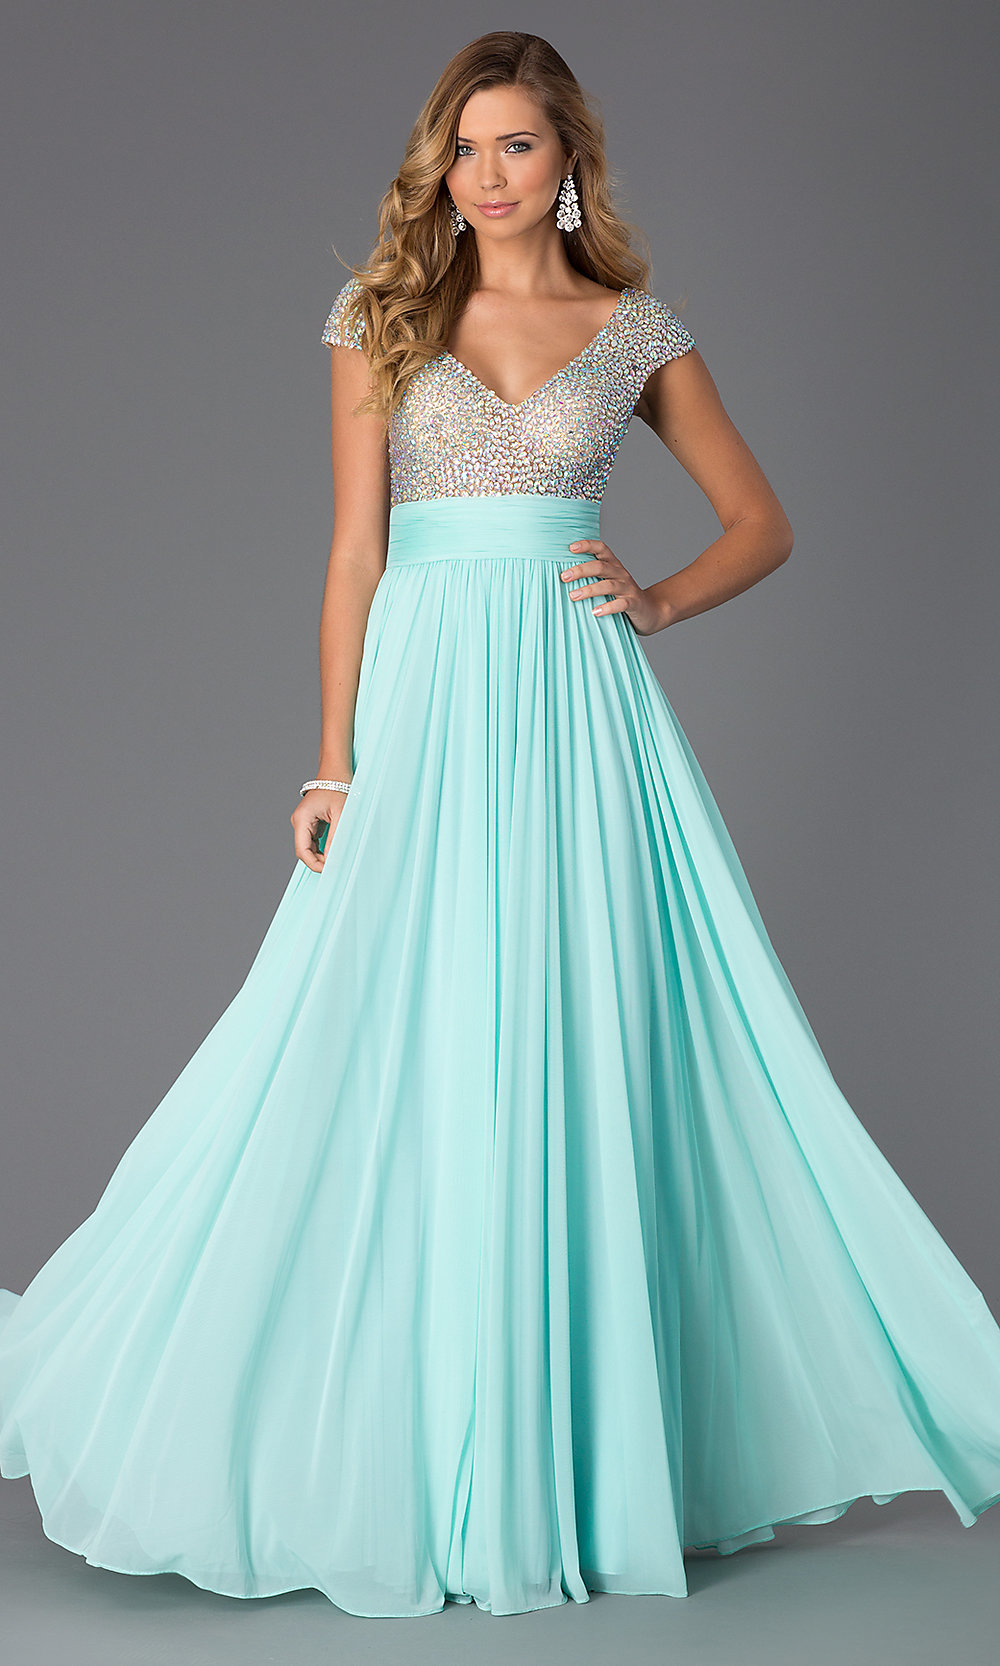 Long Sleeve Gowns, Short Sleeve Prom Dresses - p2 (by 32 - popularity)